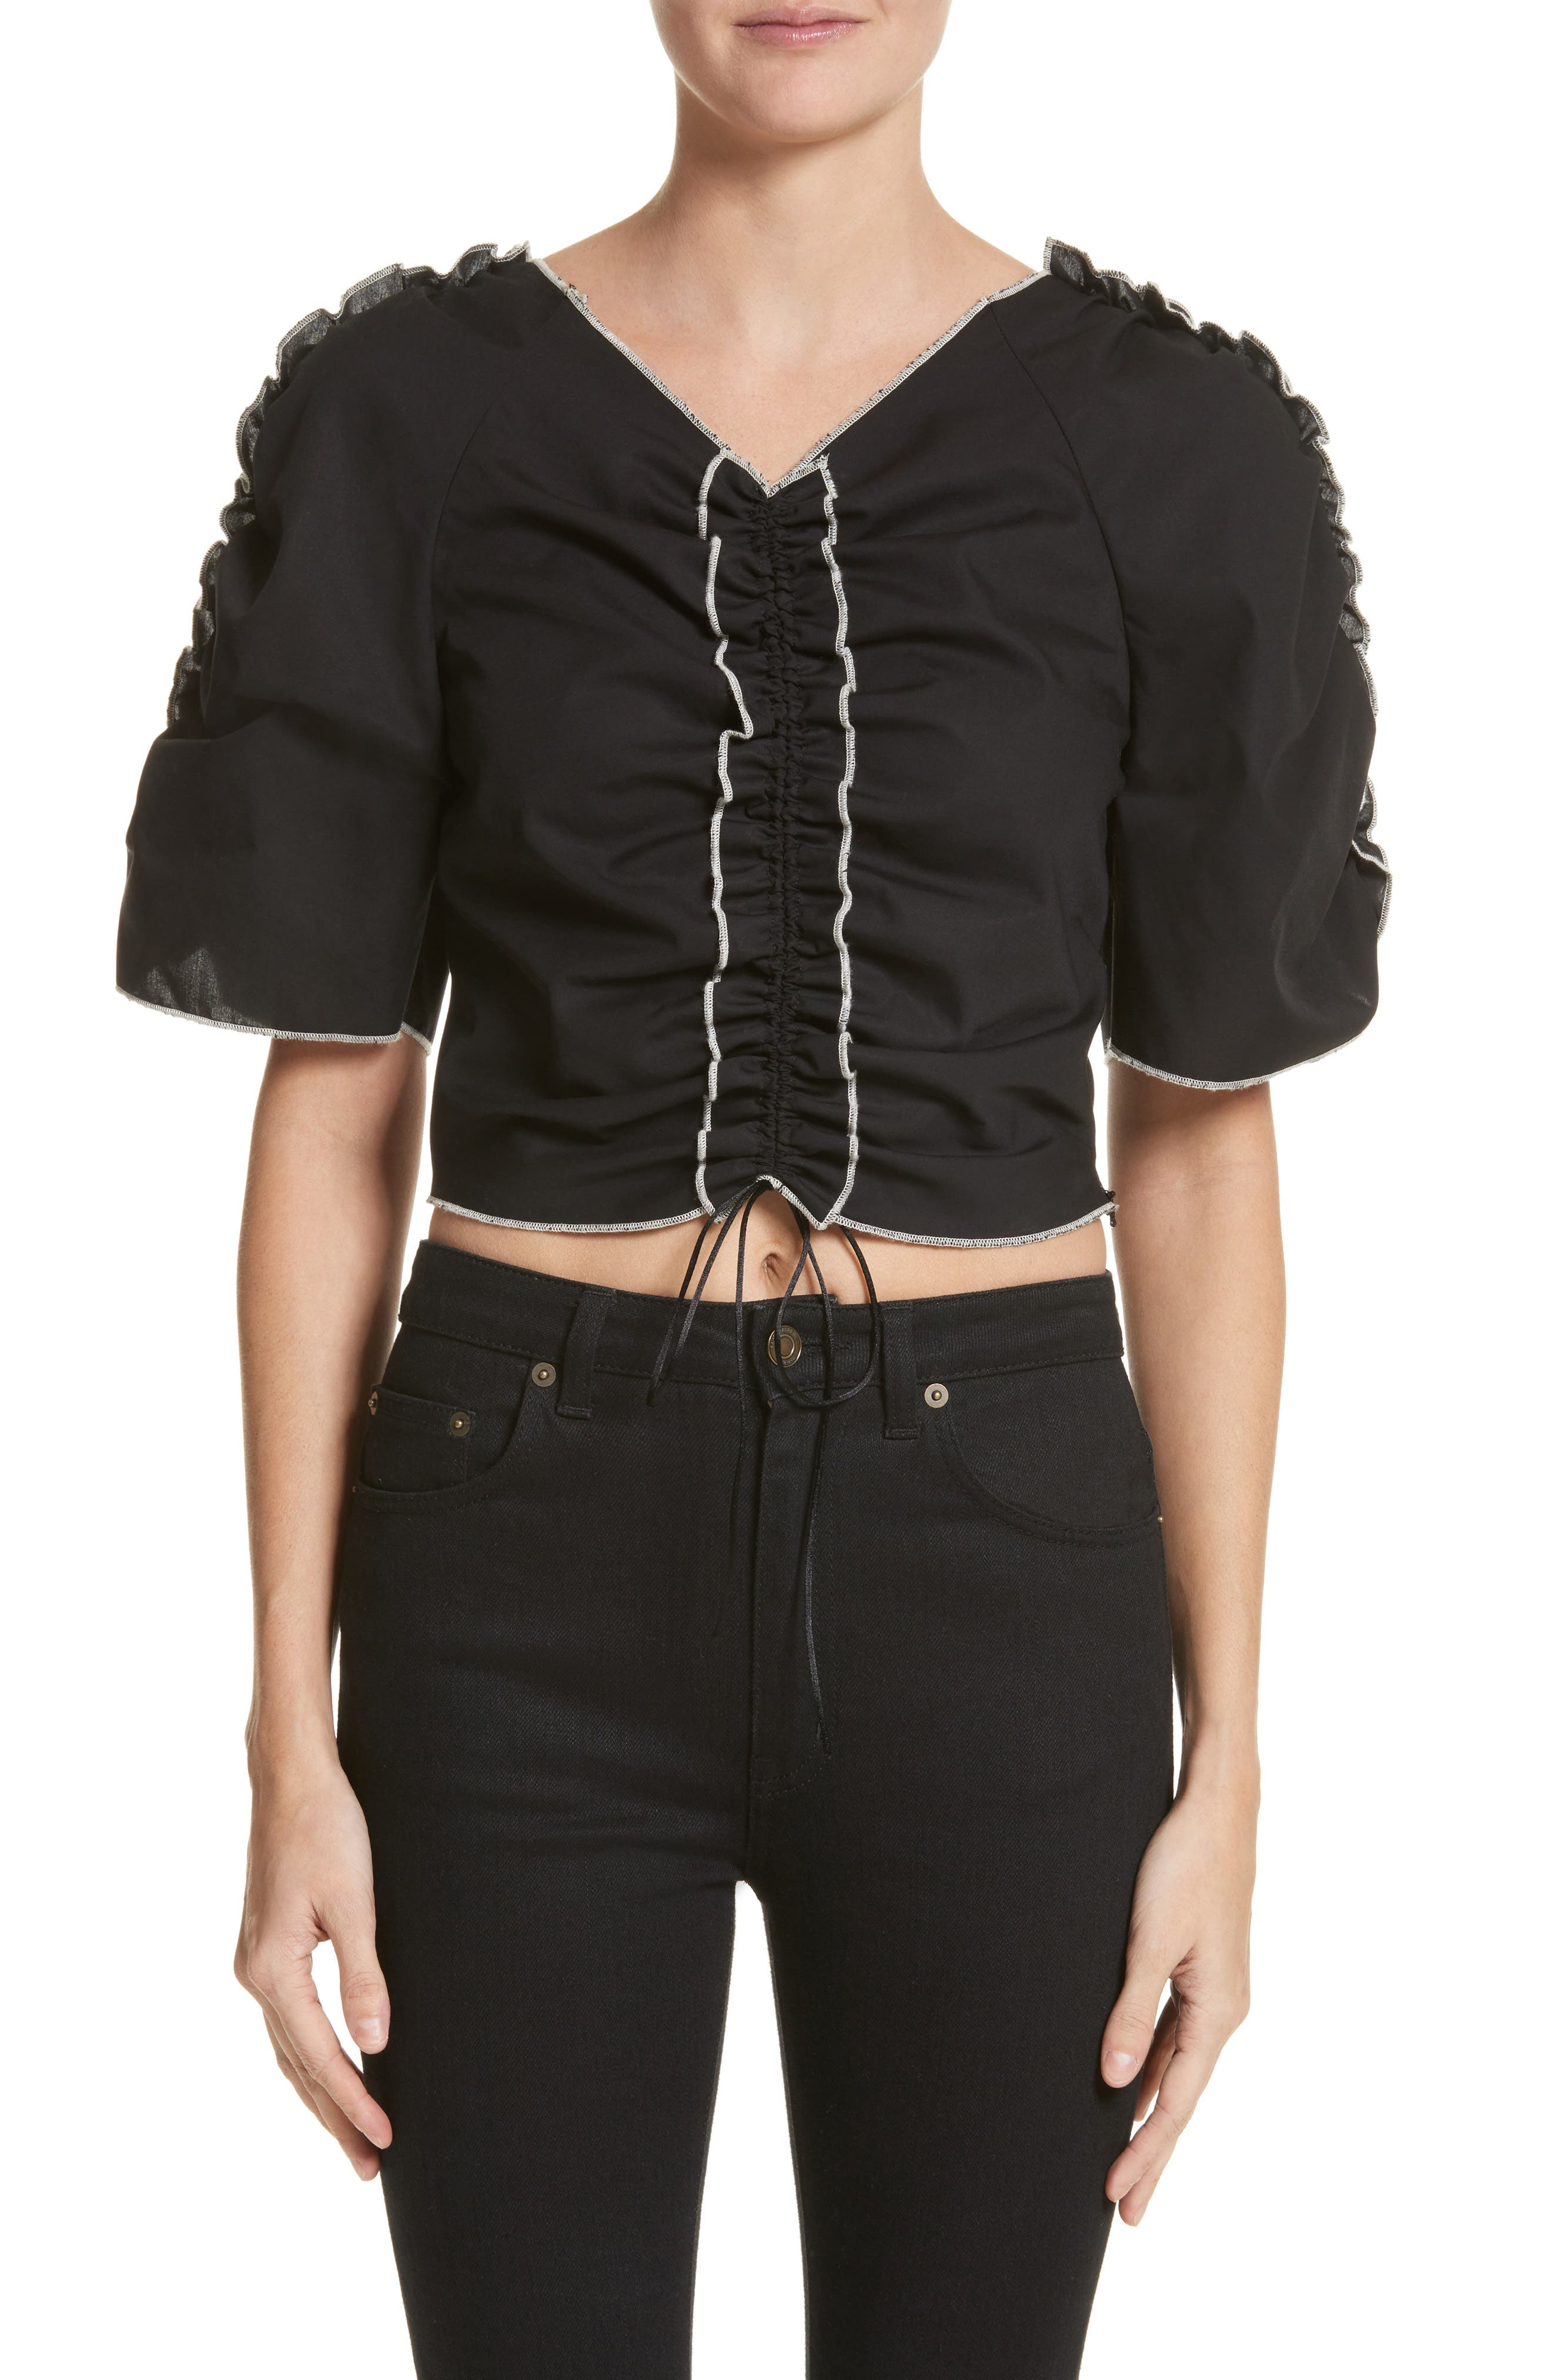 Molly Goddard Nico Gathered Drawstring Top